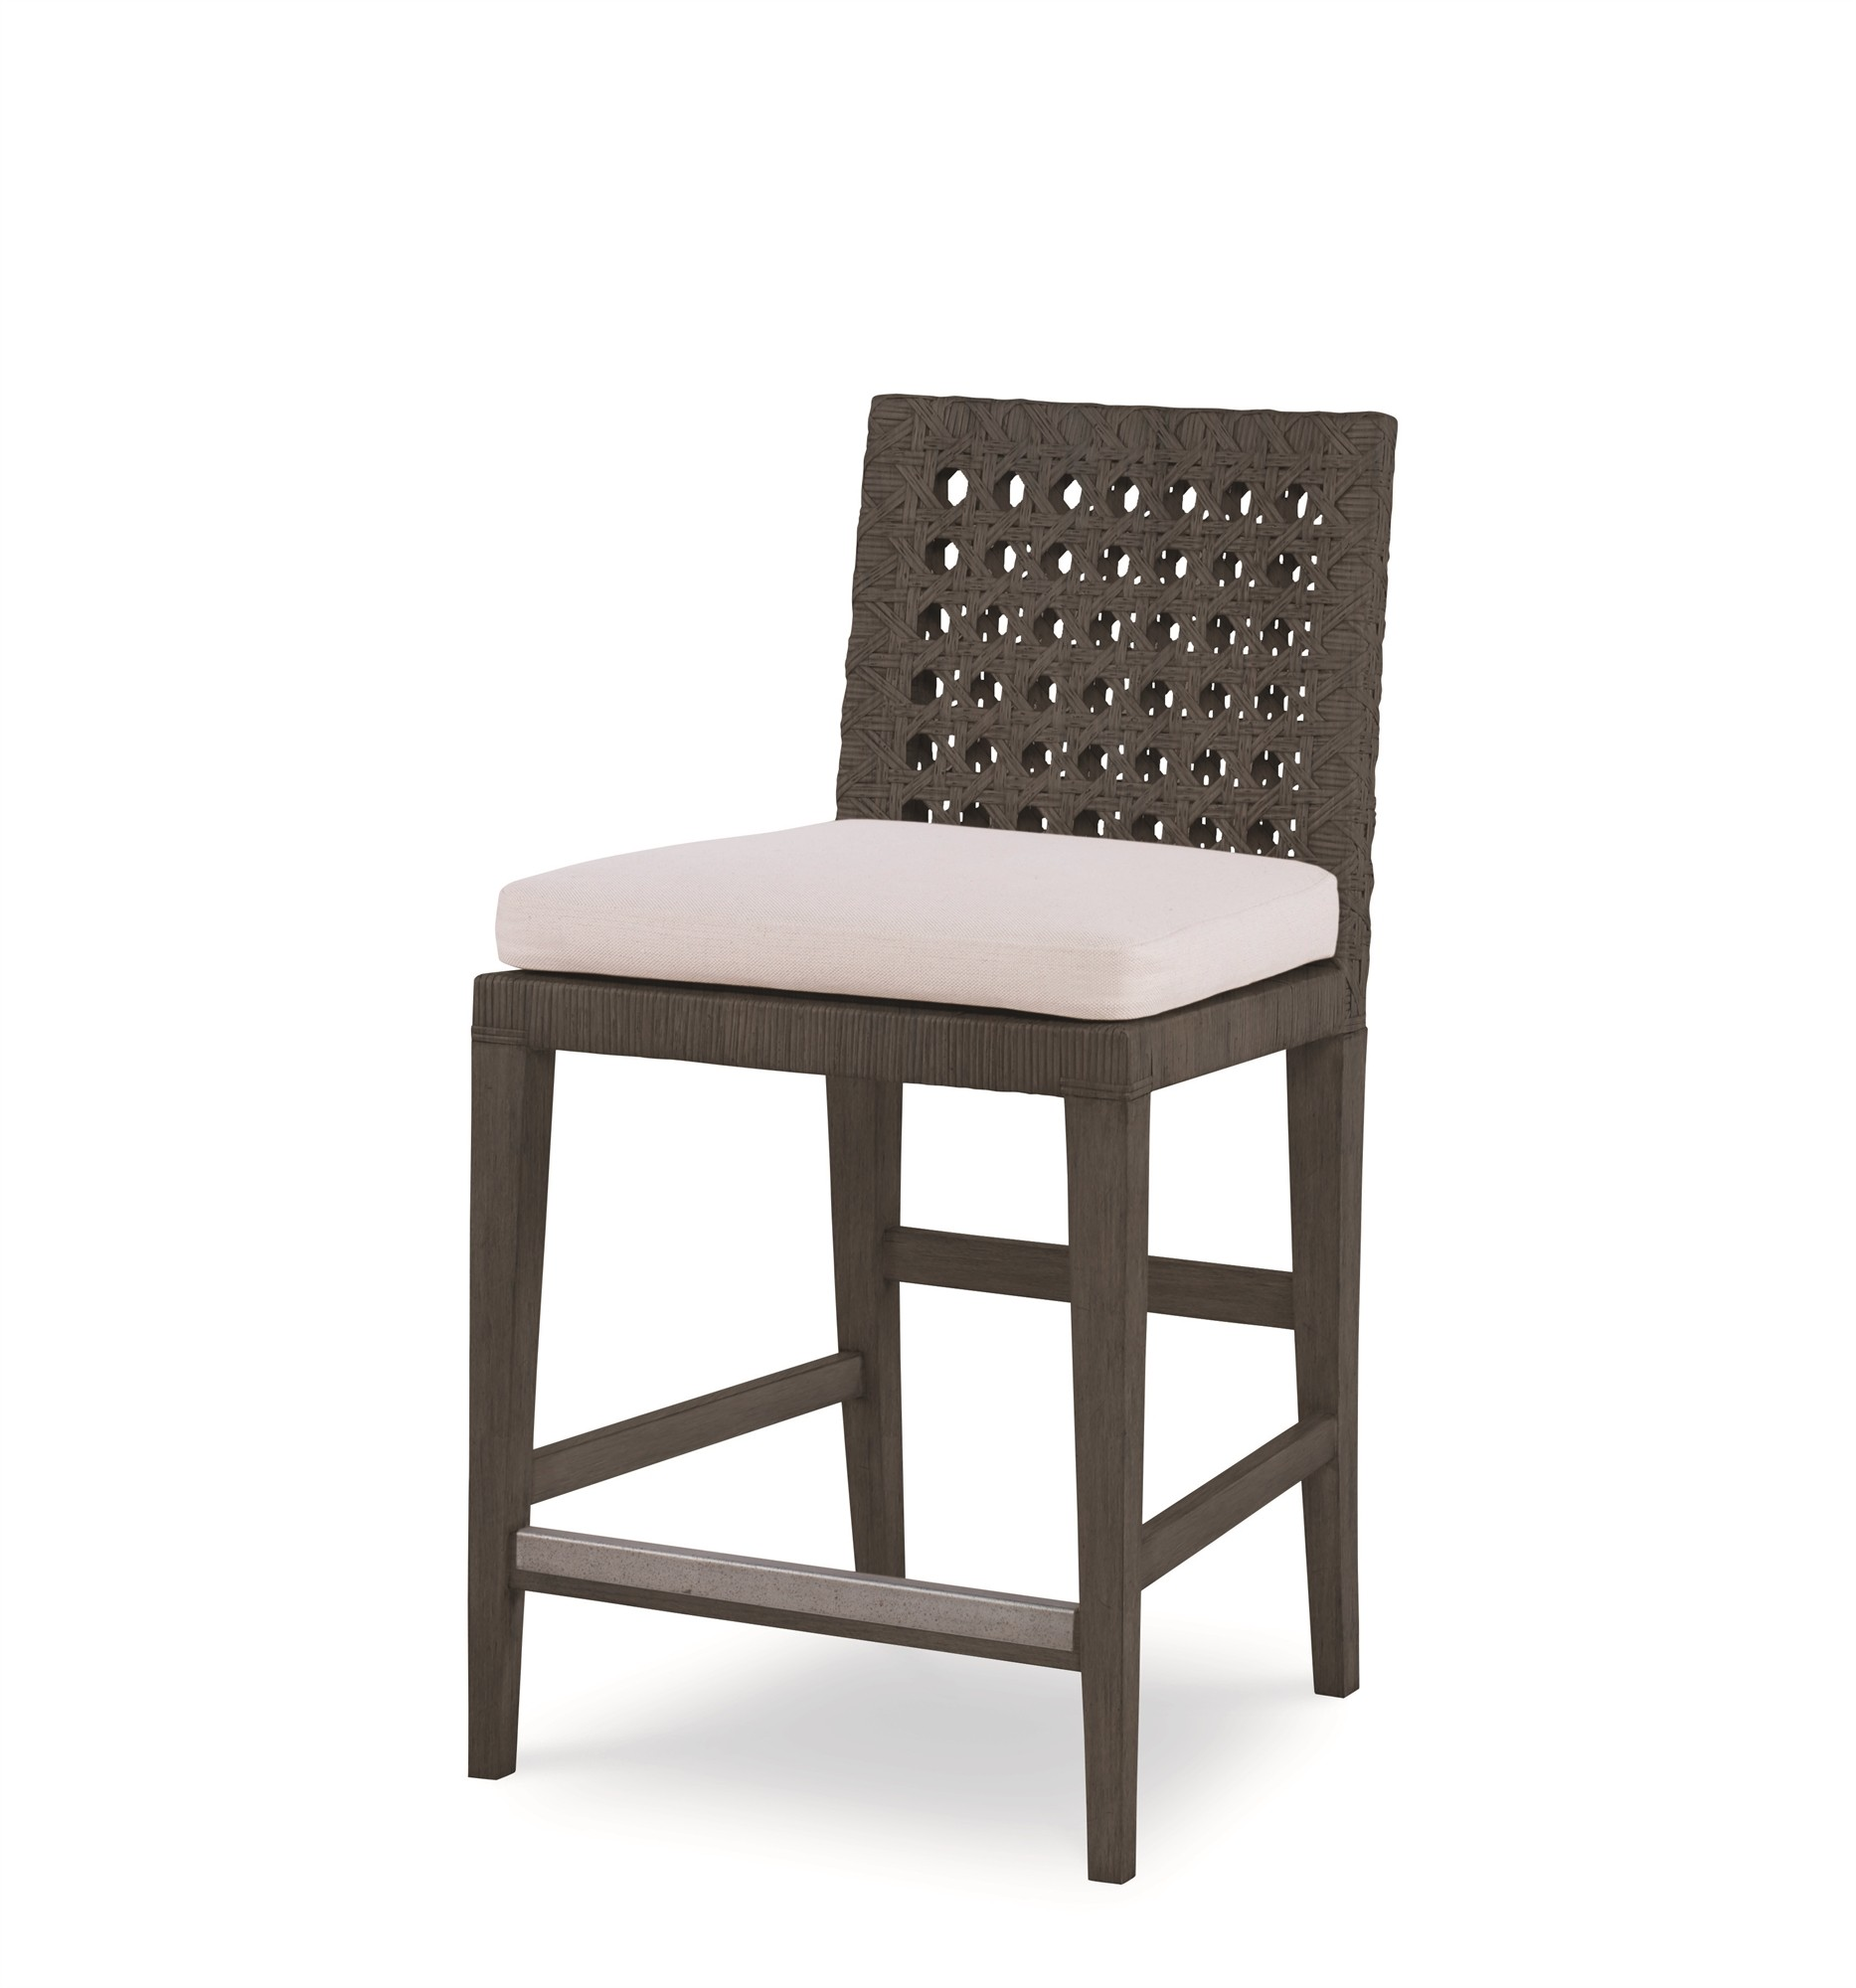 Litchfield Counter Stool-Mink/Flax (Lw-036-113-07)